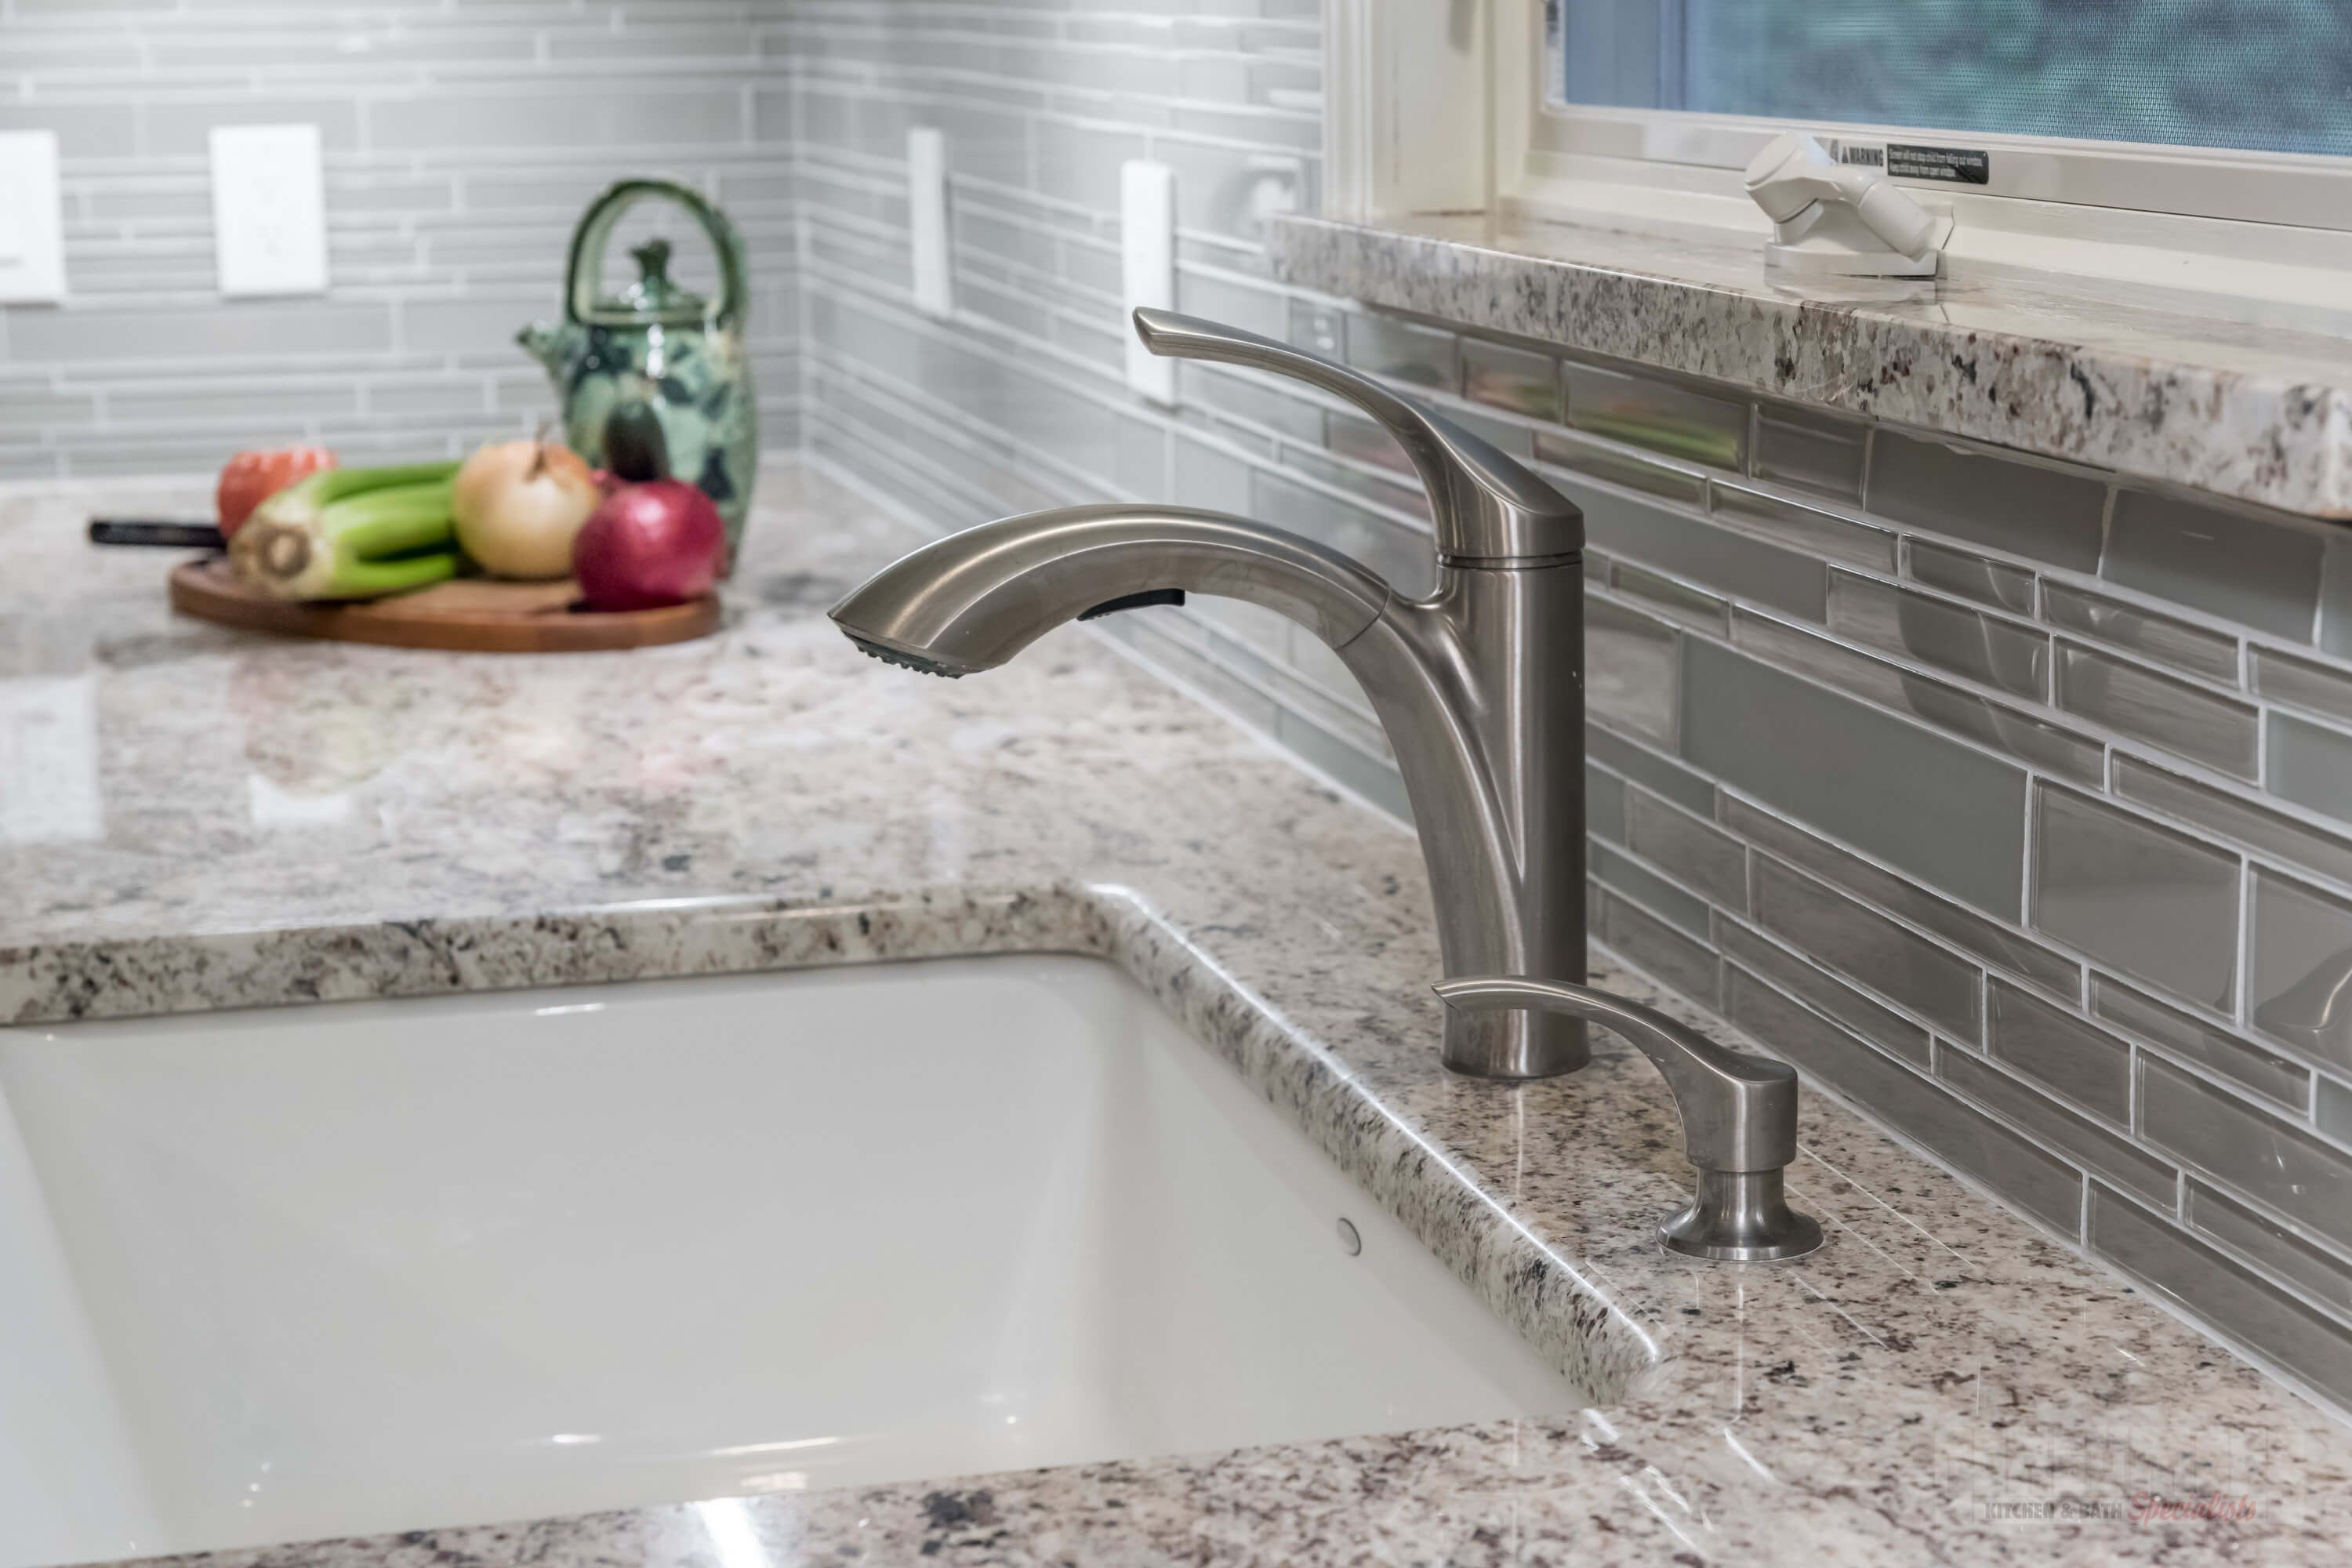 East Northport Sugar By Consumers Kitchens Baths Showcase Design Gorgeous Kitchens Northport